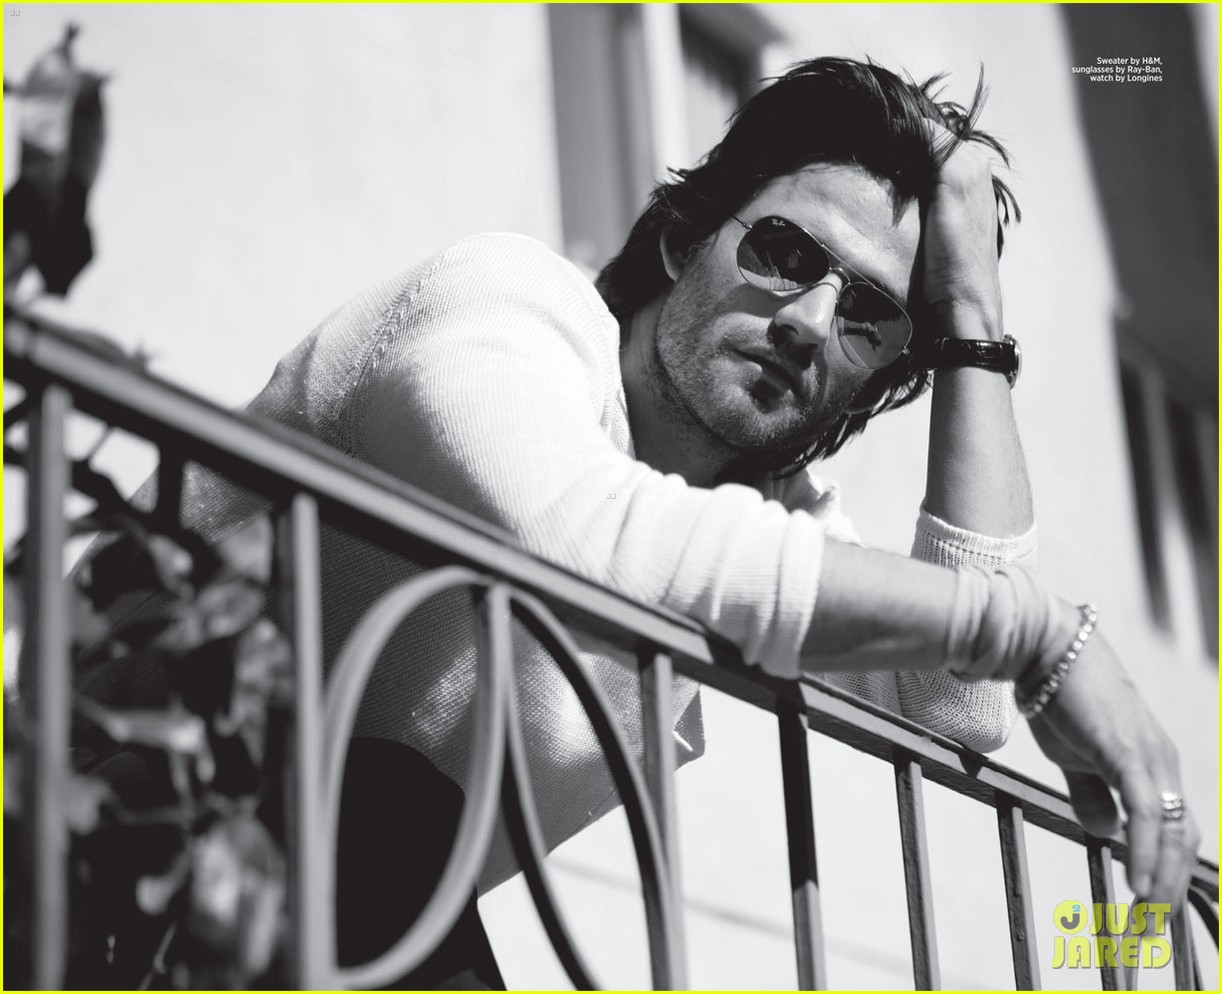 johnny whitworth wifejohnny whitworth and emily procter, johnny whitworth height, johnny whitworth imdb, johnny whitworth, johnny whitworth married, johnny whitworth wife, johnny whitworth instagram, johnny whitworth twitter, johnny whitworth csi miami, johnny whitworth limitless, johnny whitworth tumblr, johnny whitworth valley of the sun, johnny whitworth fansite, johnny whitworth scar, johnny whitworth the 100, johnny whitworth cleft lip, johnny whitworth girlfriend, johnny whitworth net worth, johnny whitworth cicatrice, johnny whitworth shirtless